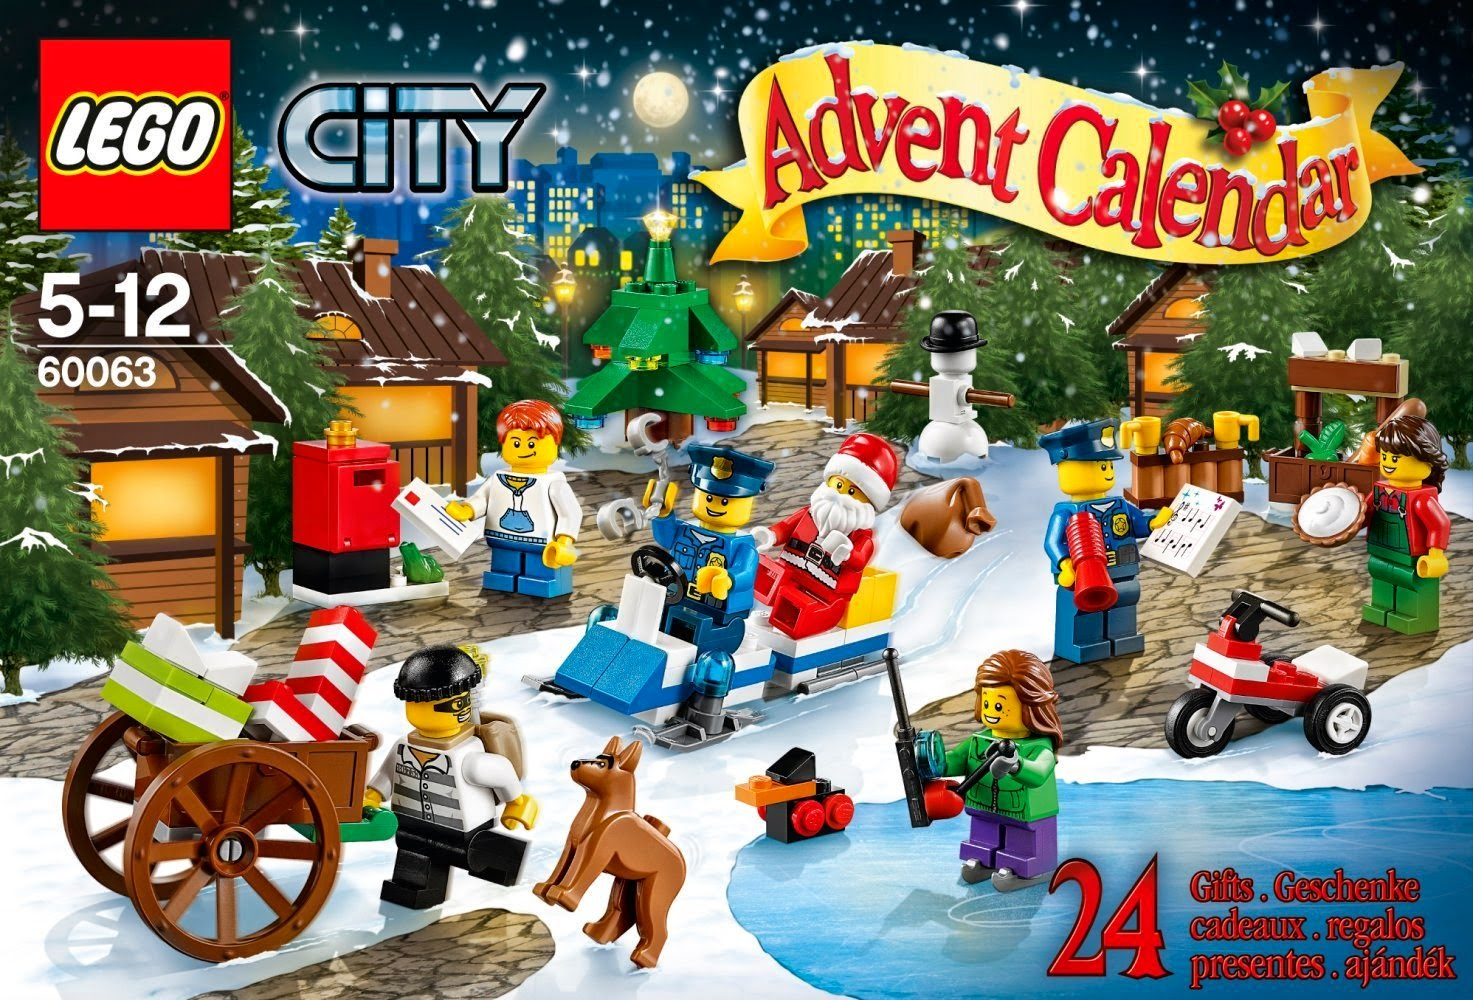 Calendario Dell Avvento Lego City Town 60063 24 regali Natale 2014 prezzo